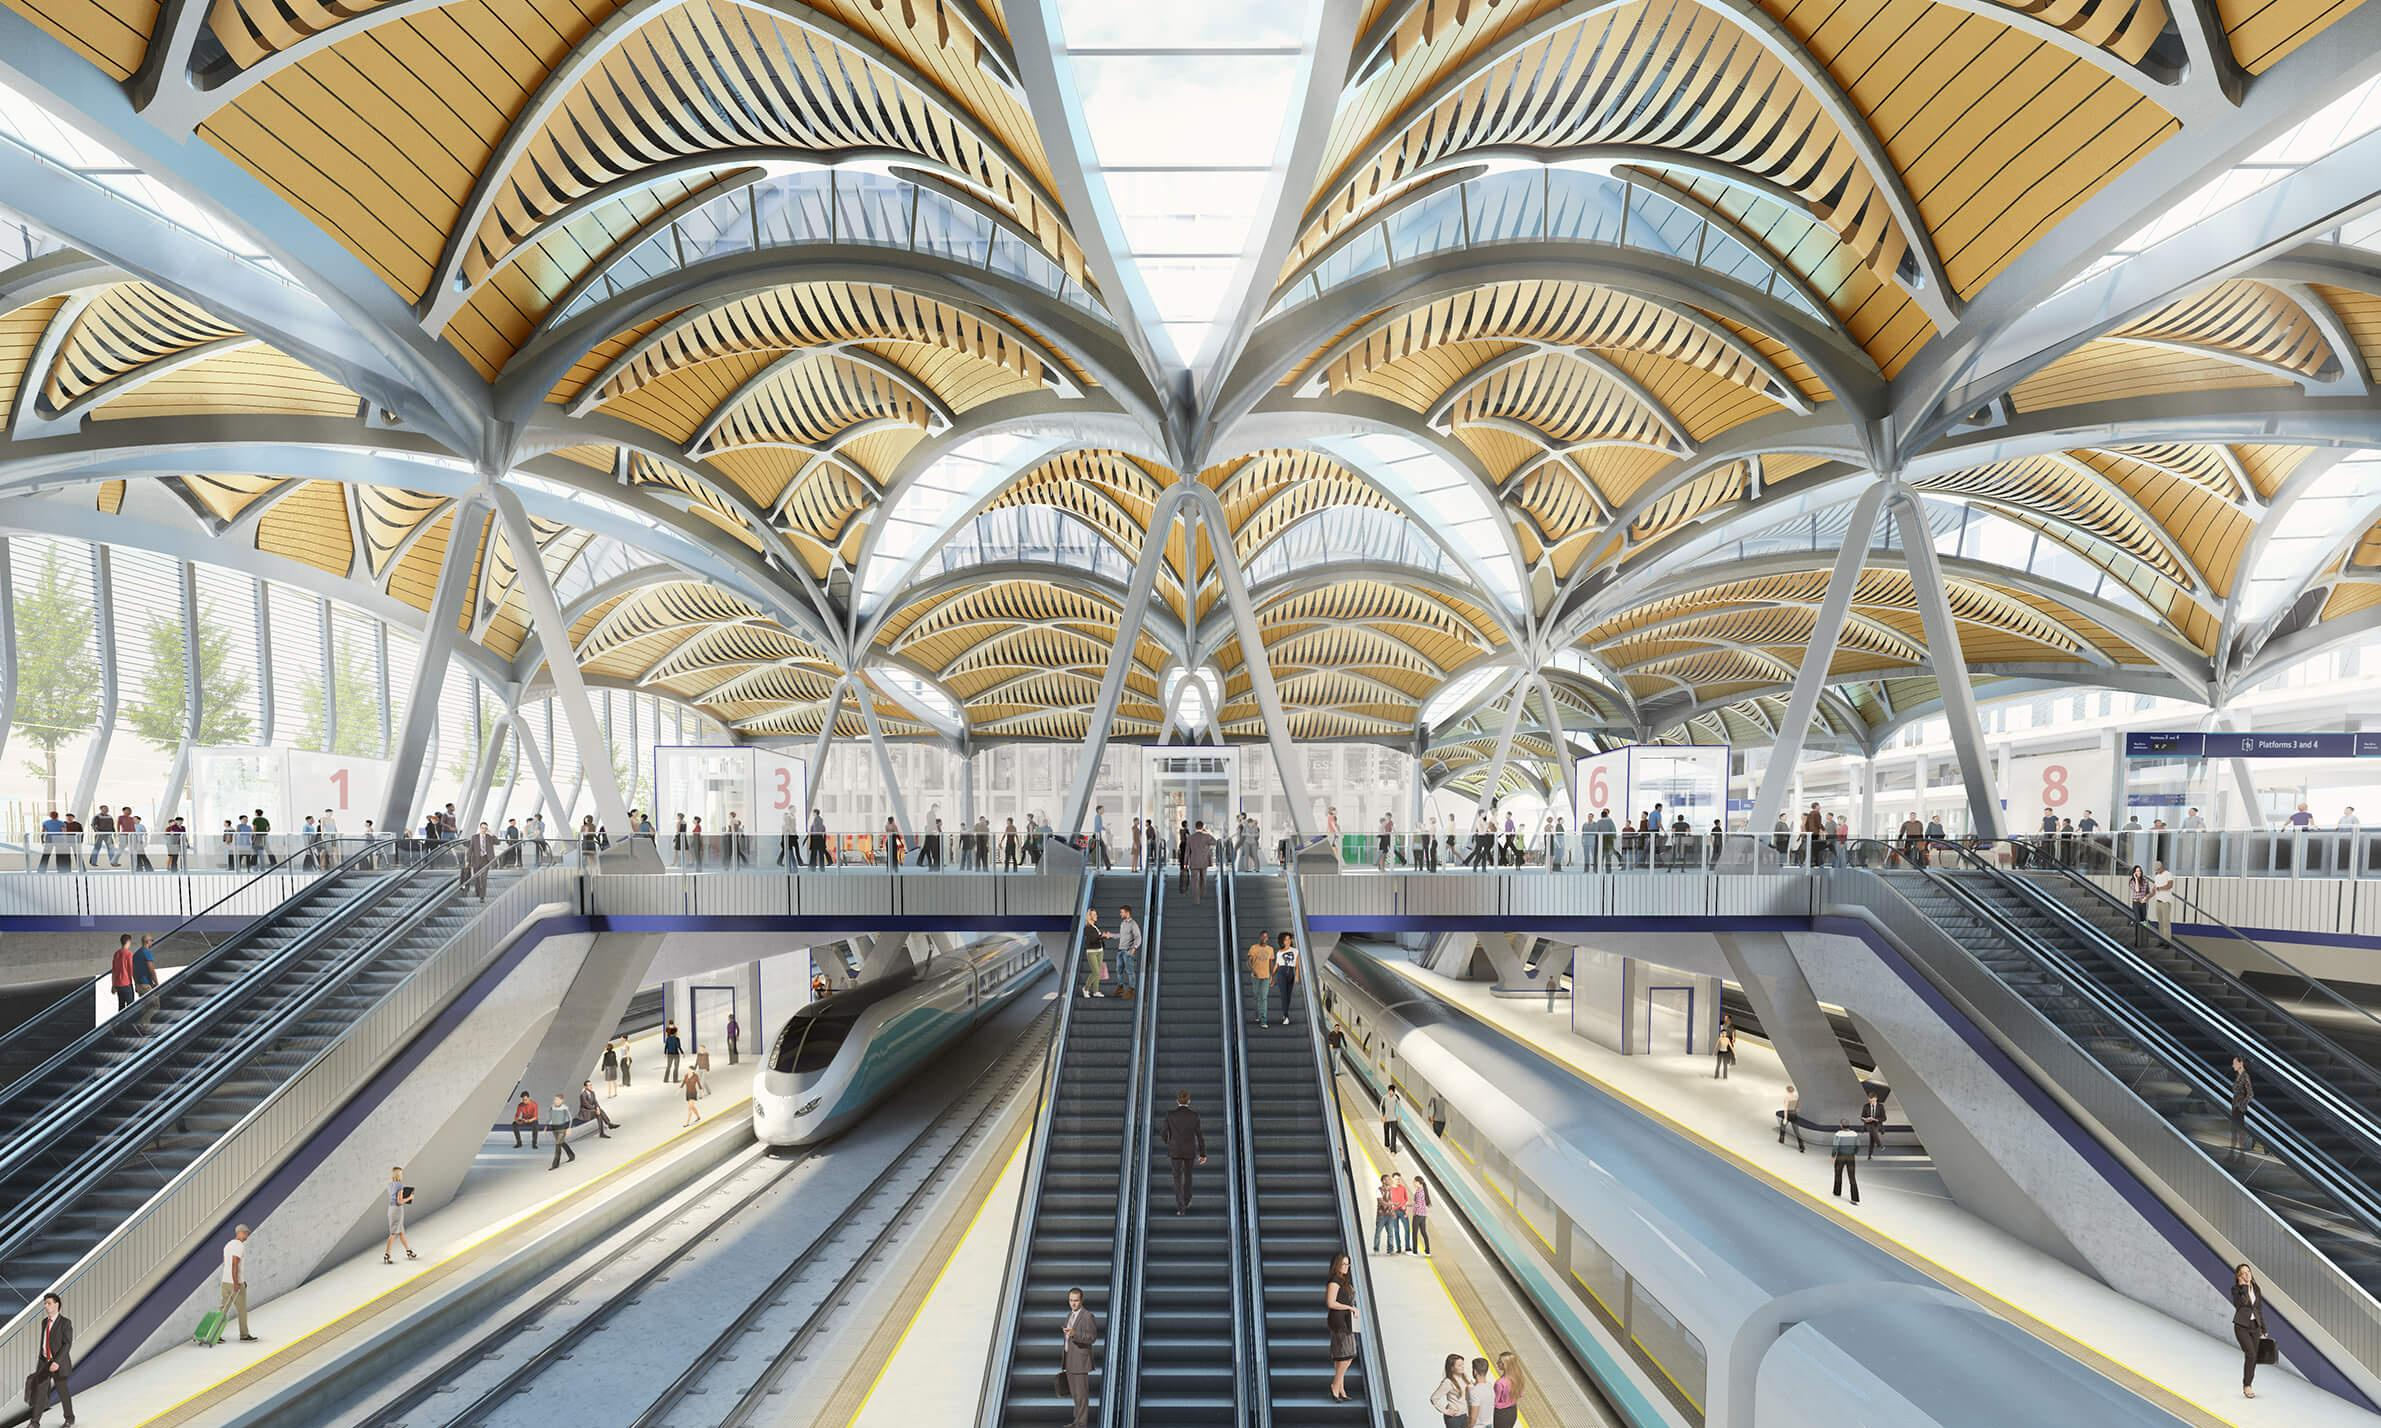 The north needs HS2 for its economic future